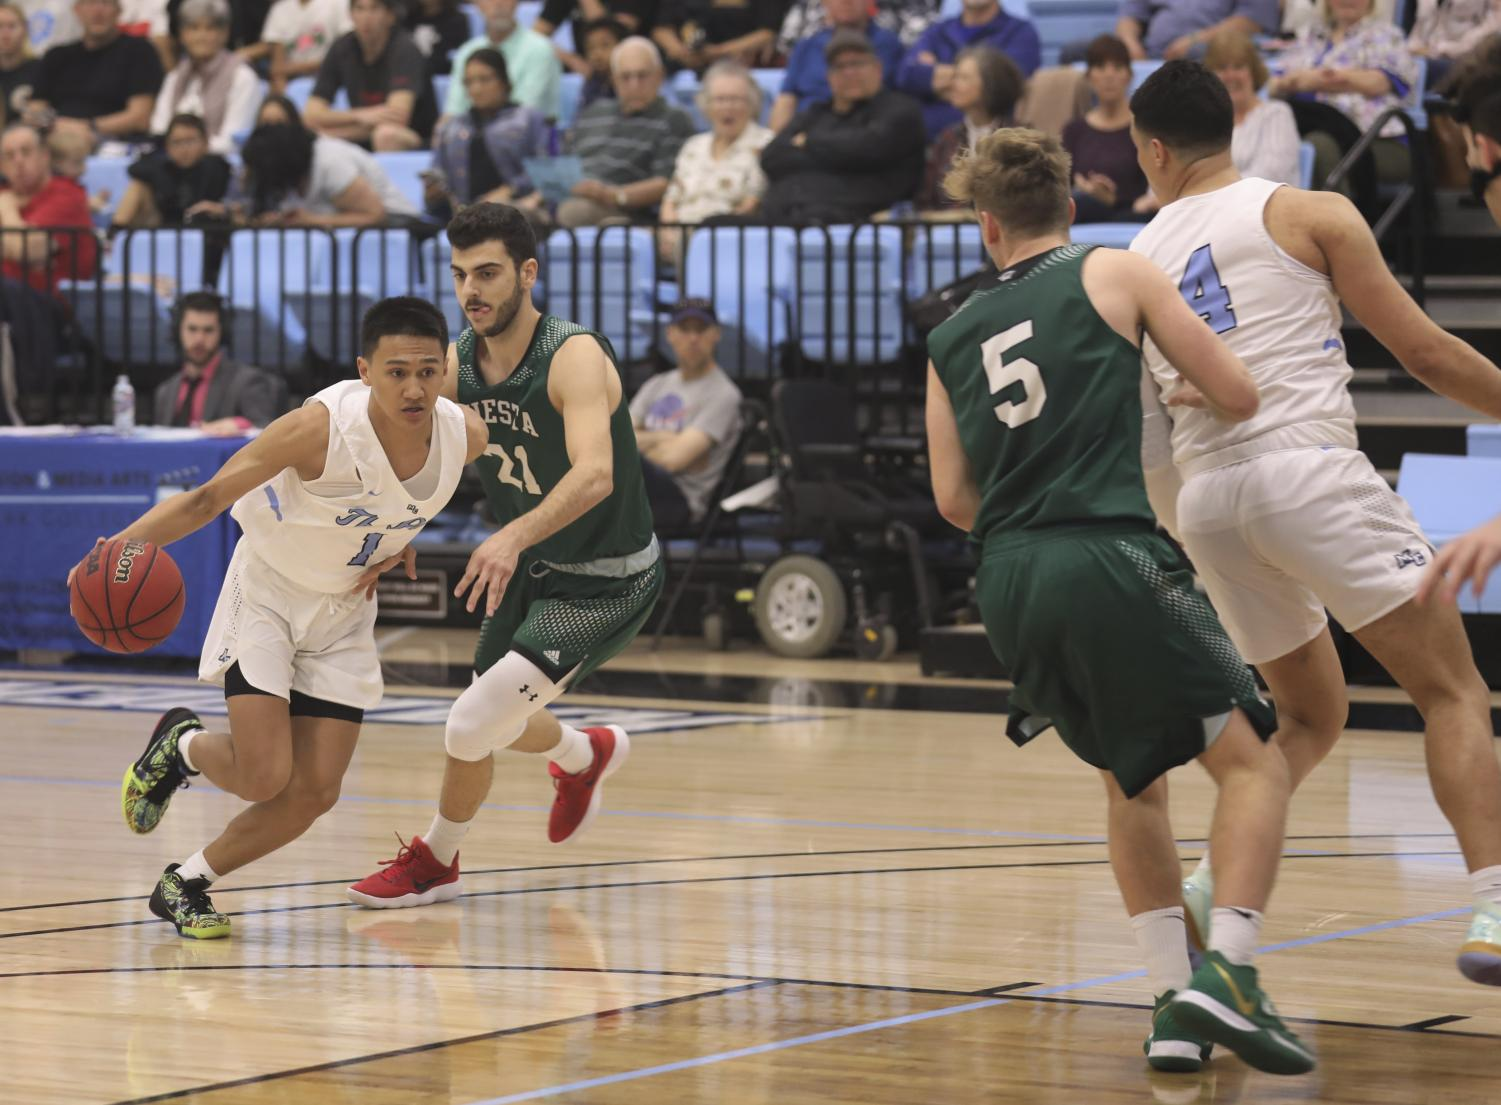 Sophomore guard Ben Guard attempts to break down his defender in their 85-76 victory over Cuesta College on Saturday, Jan. 25 at Moorpark College. Photo credit: Ryan Bough